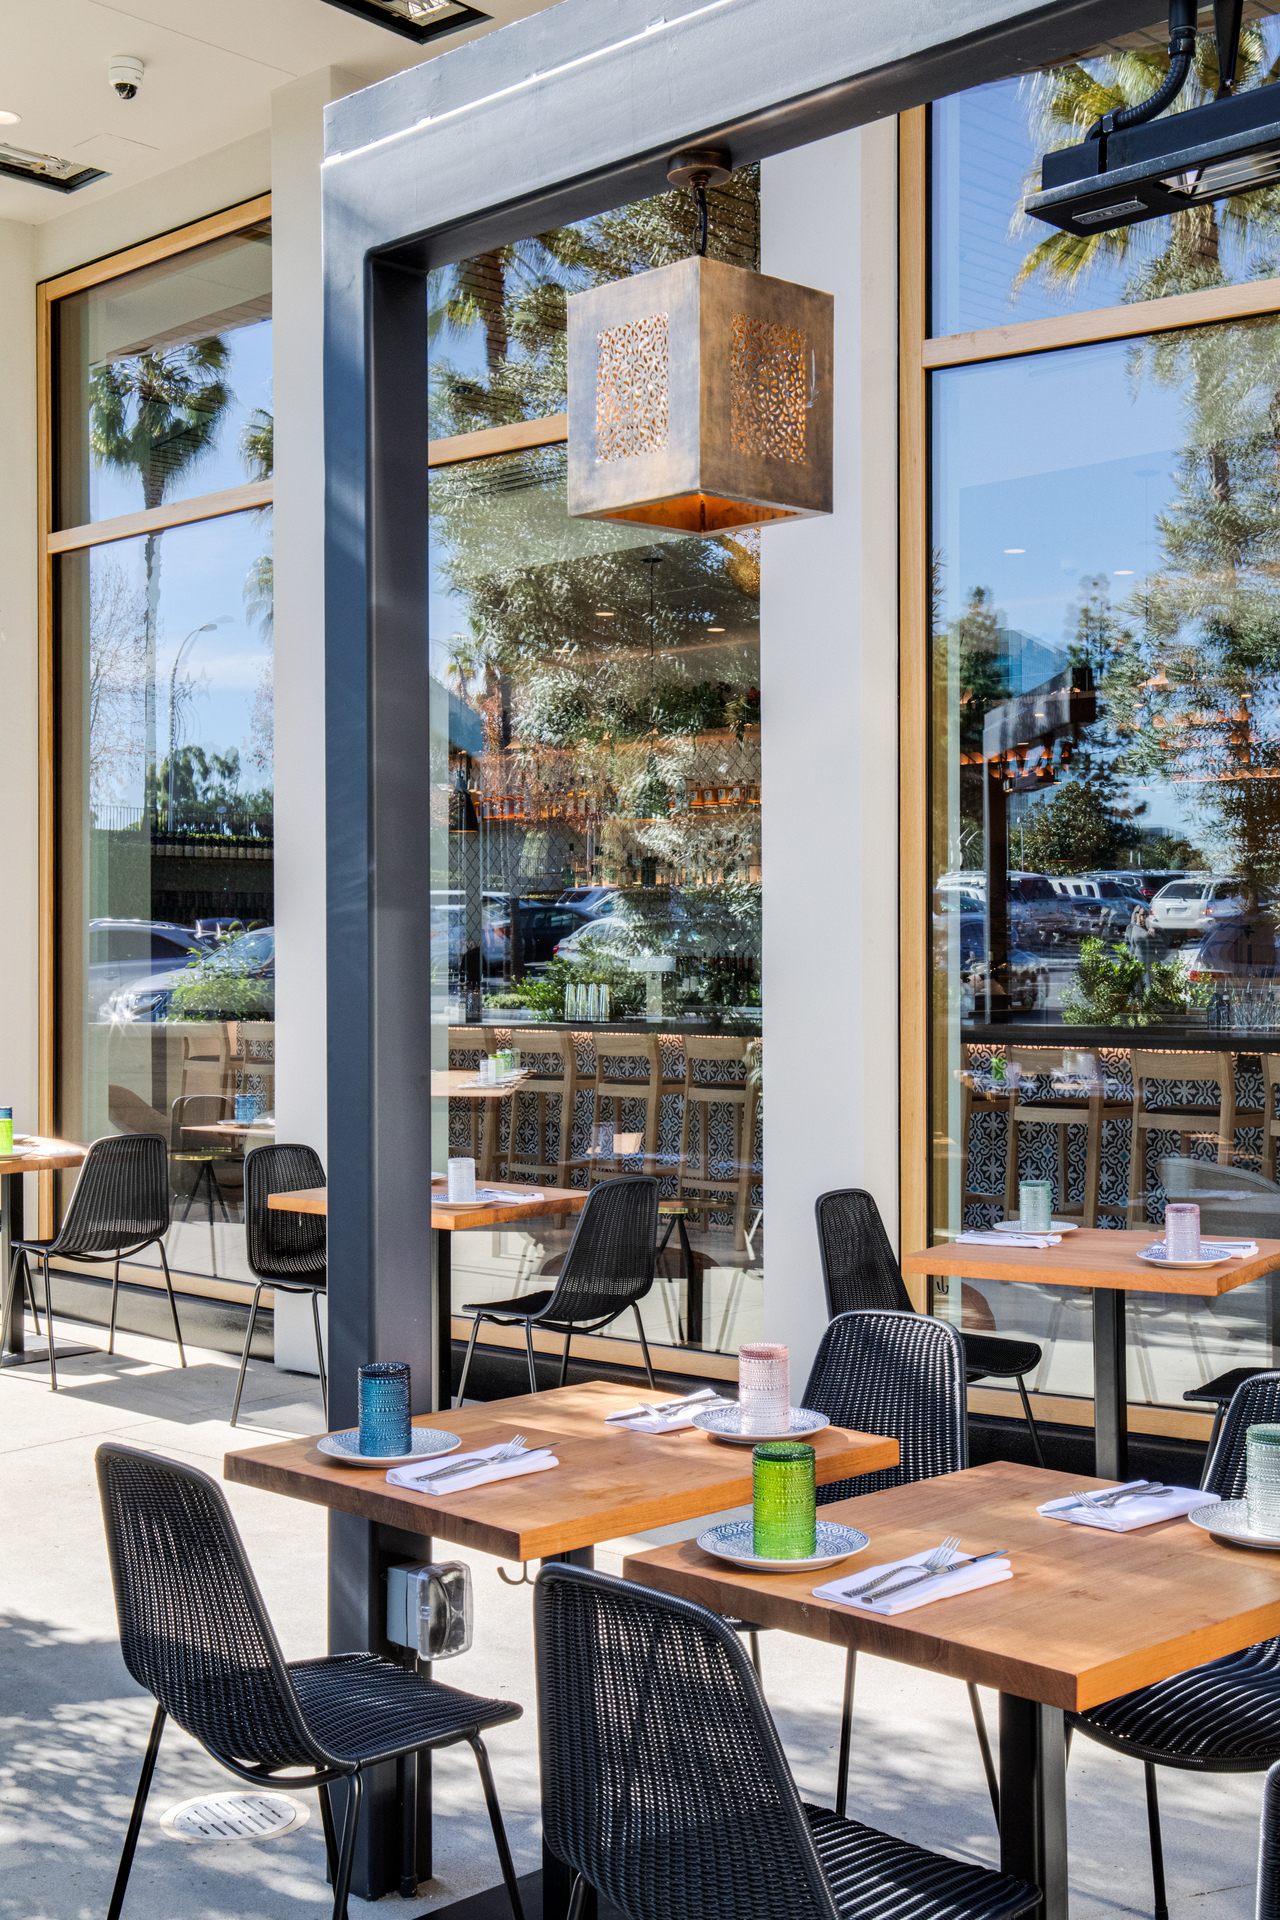 Our electric heaters are specifically designed so heat doesn't blow away in windy or drafty fall air, making it the perfect choice for your outdoor dining needs.